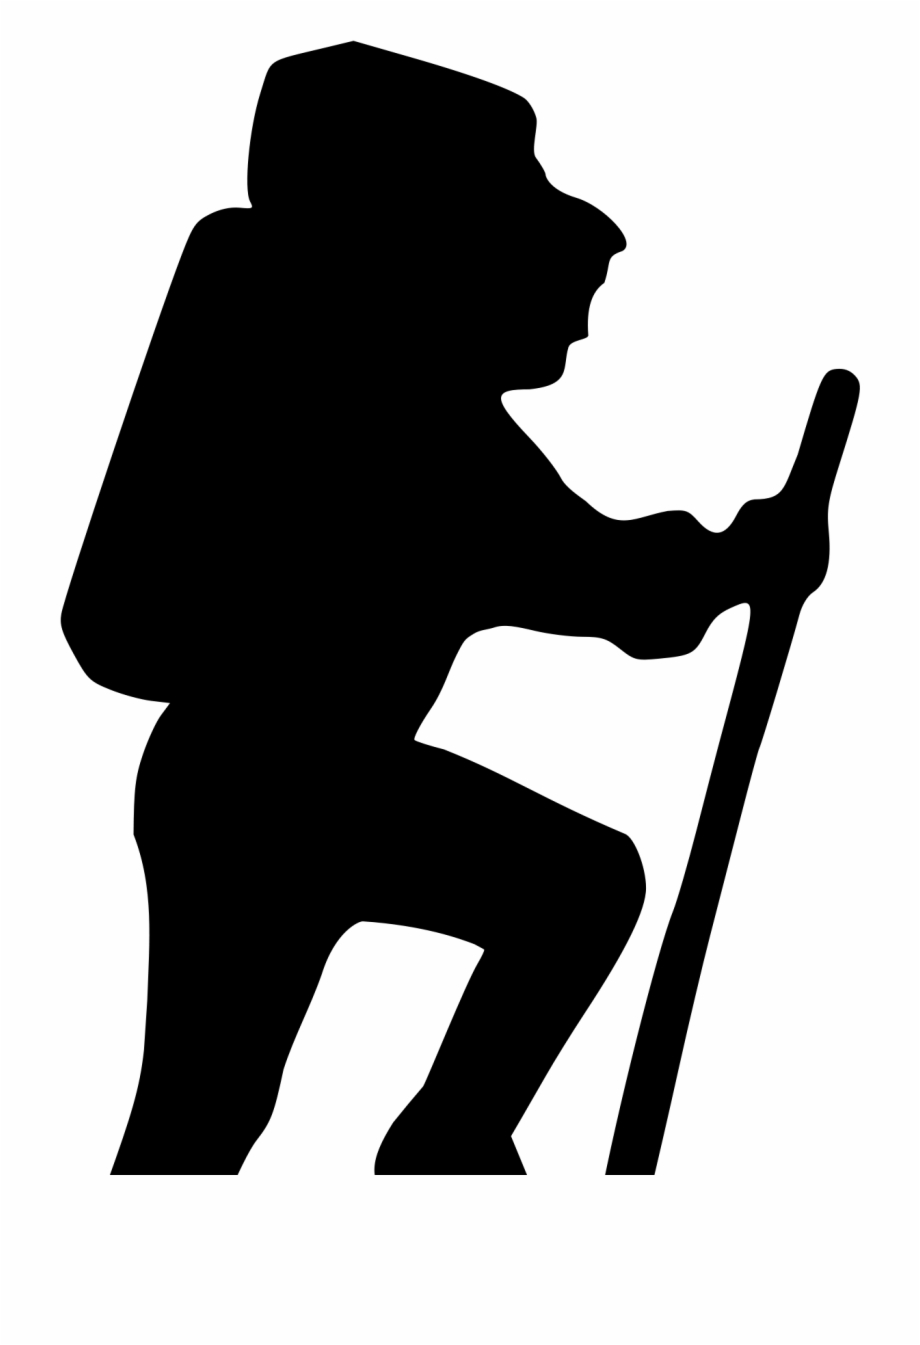 hiking silhouette 10 hiker silhouette png transparent onlygfxcom silhouette hiking 1 1